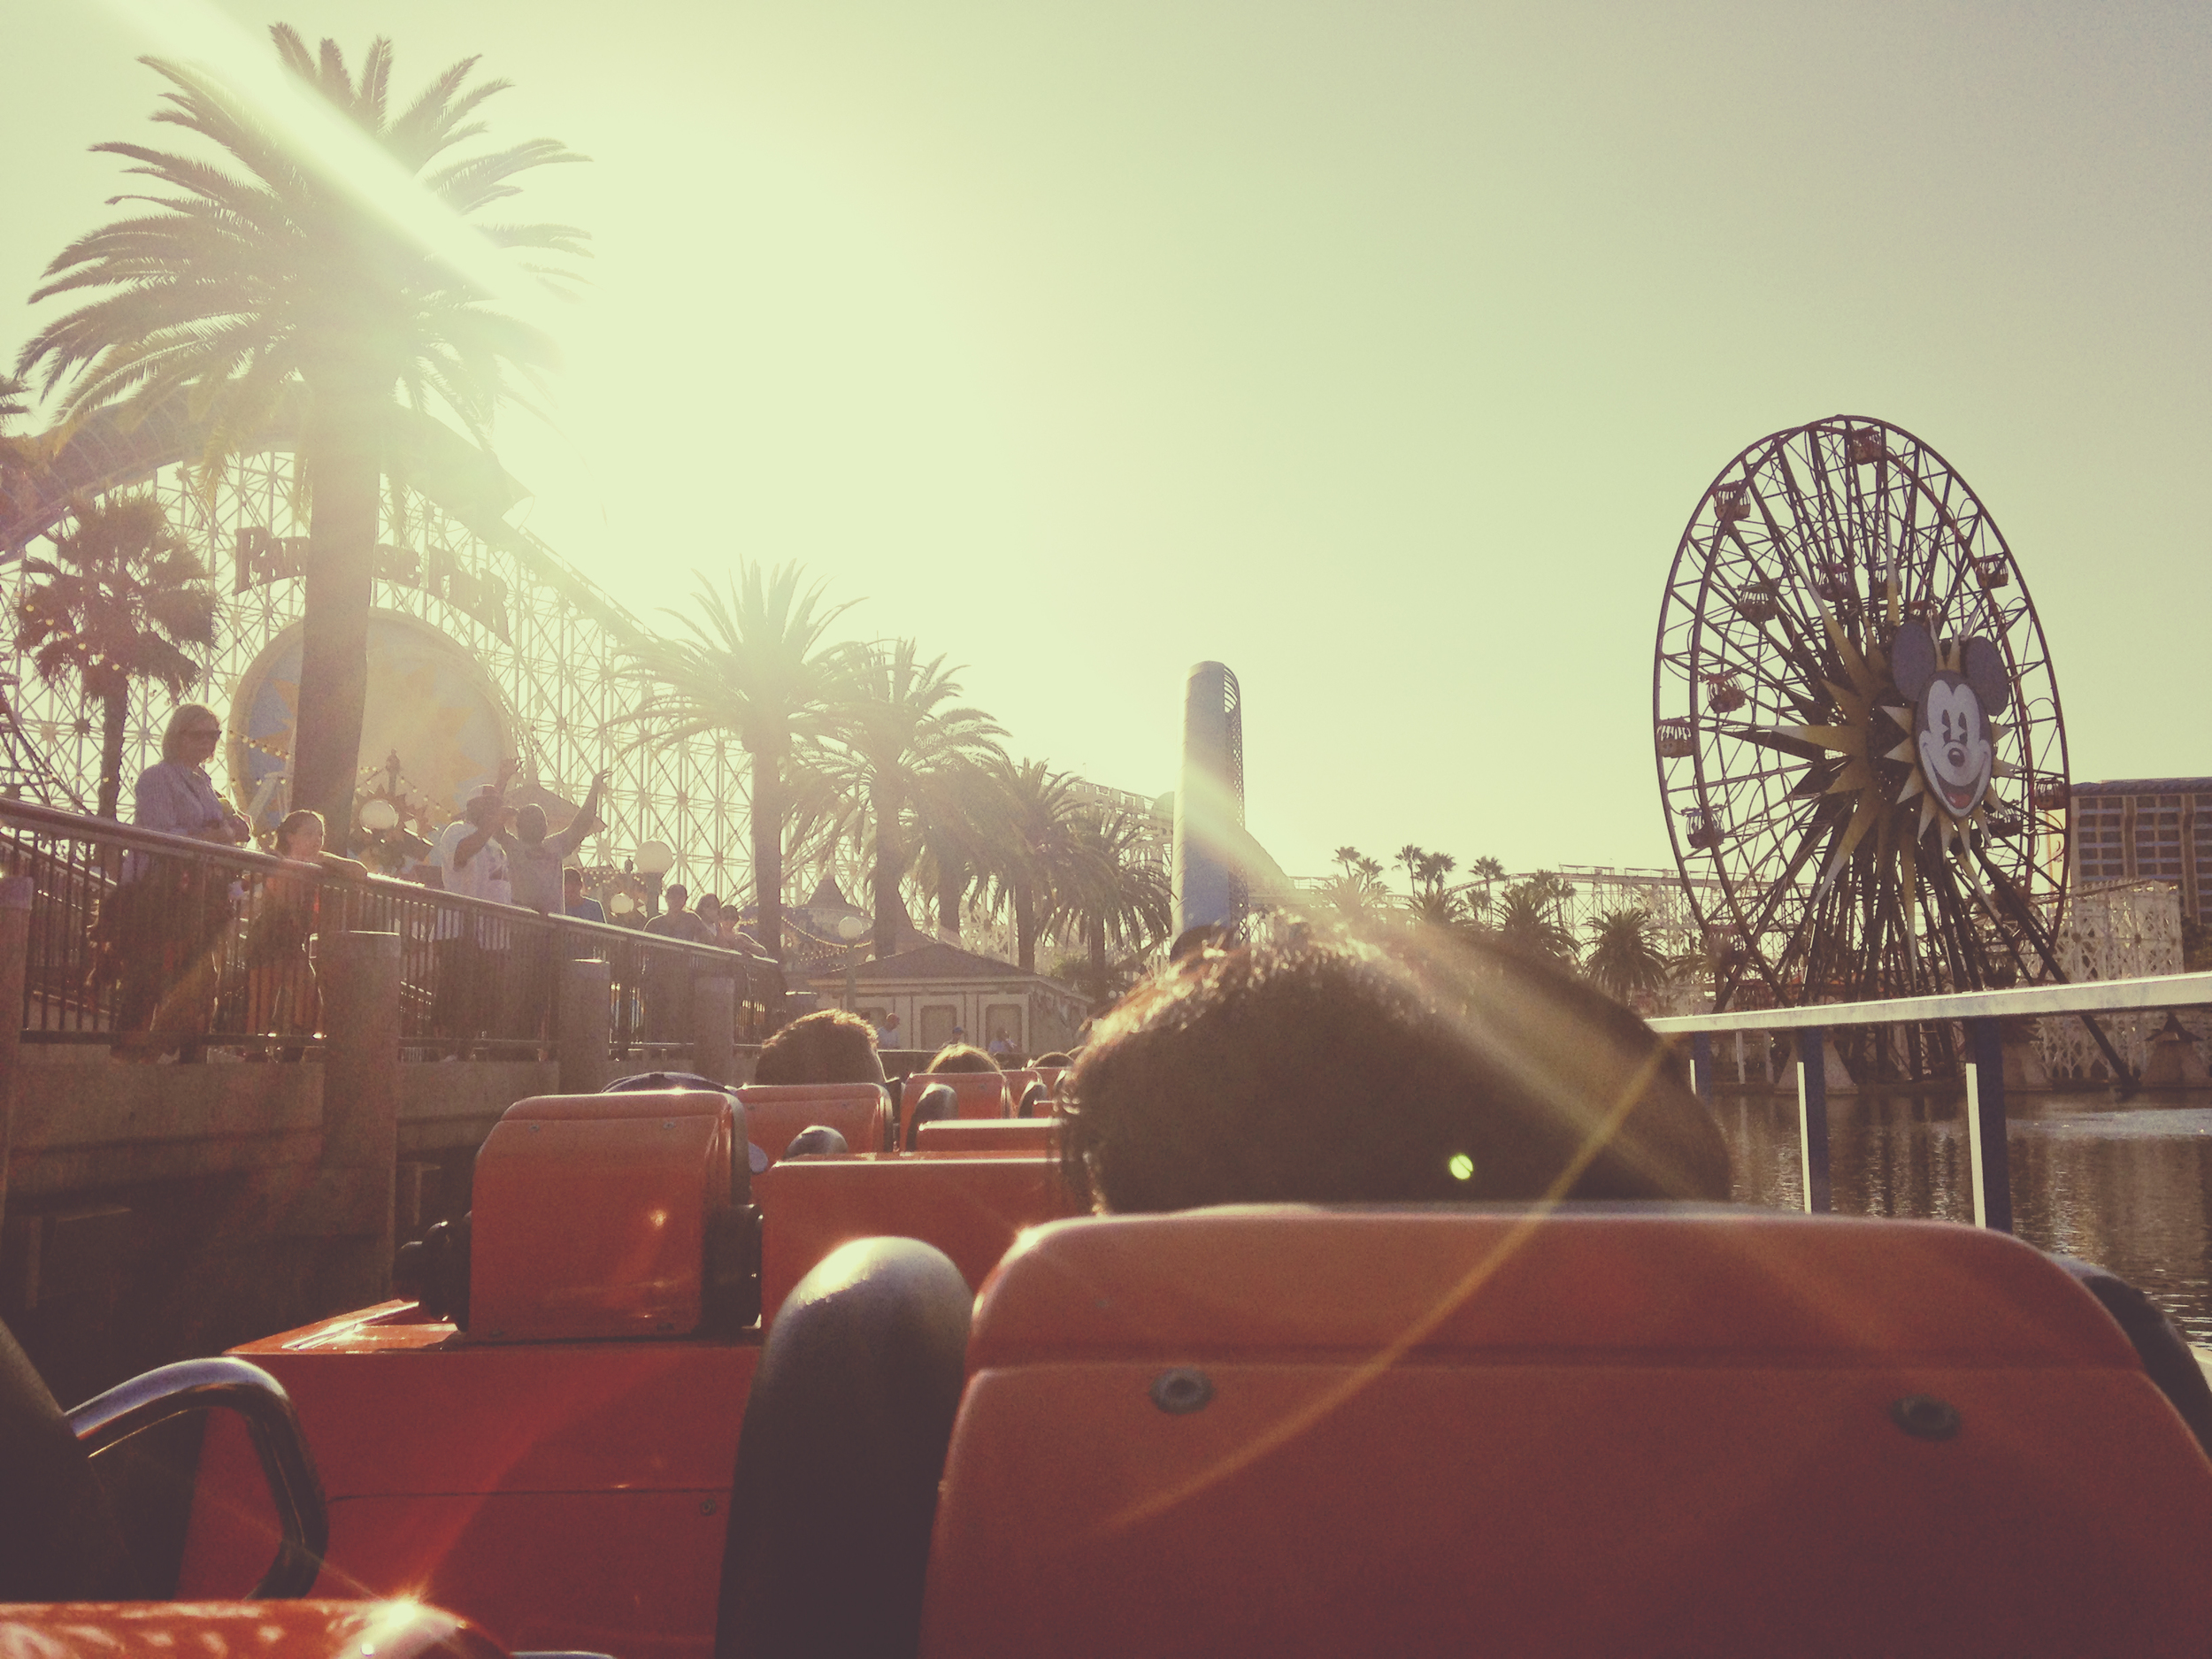 After assessing all of the line wait times, we decided to hit up Screaming.